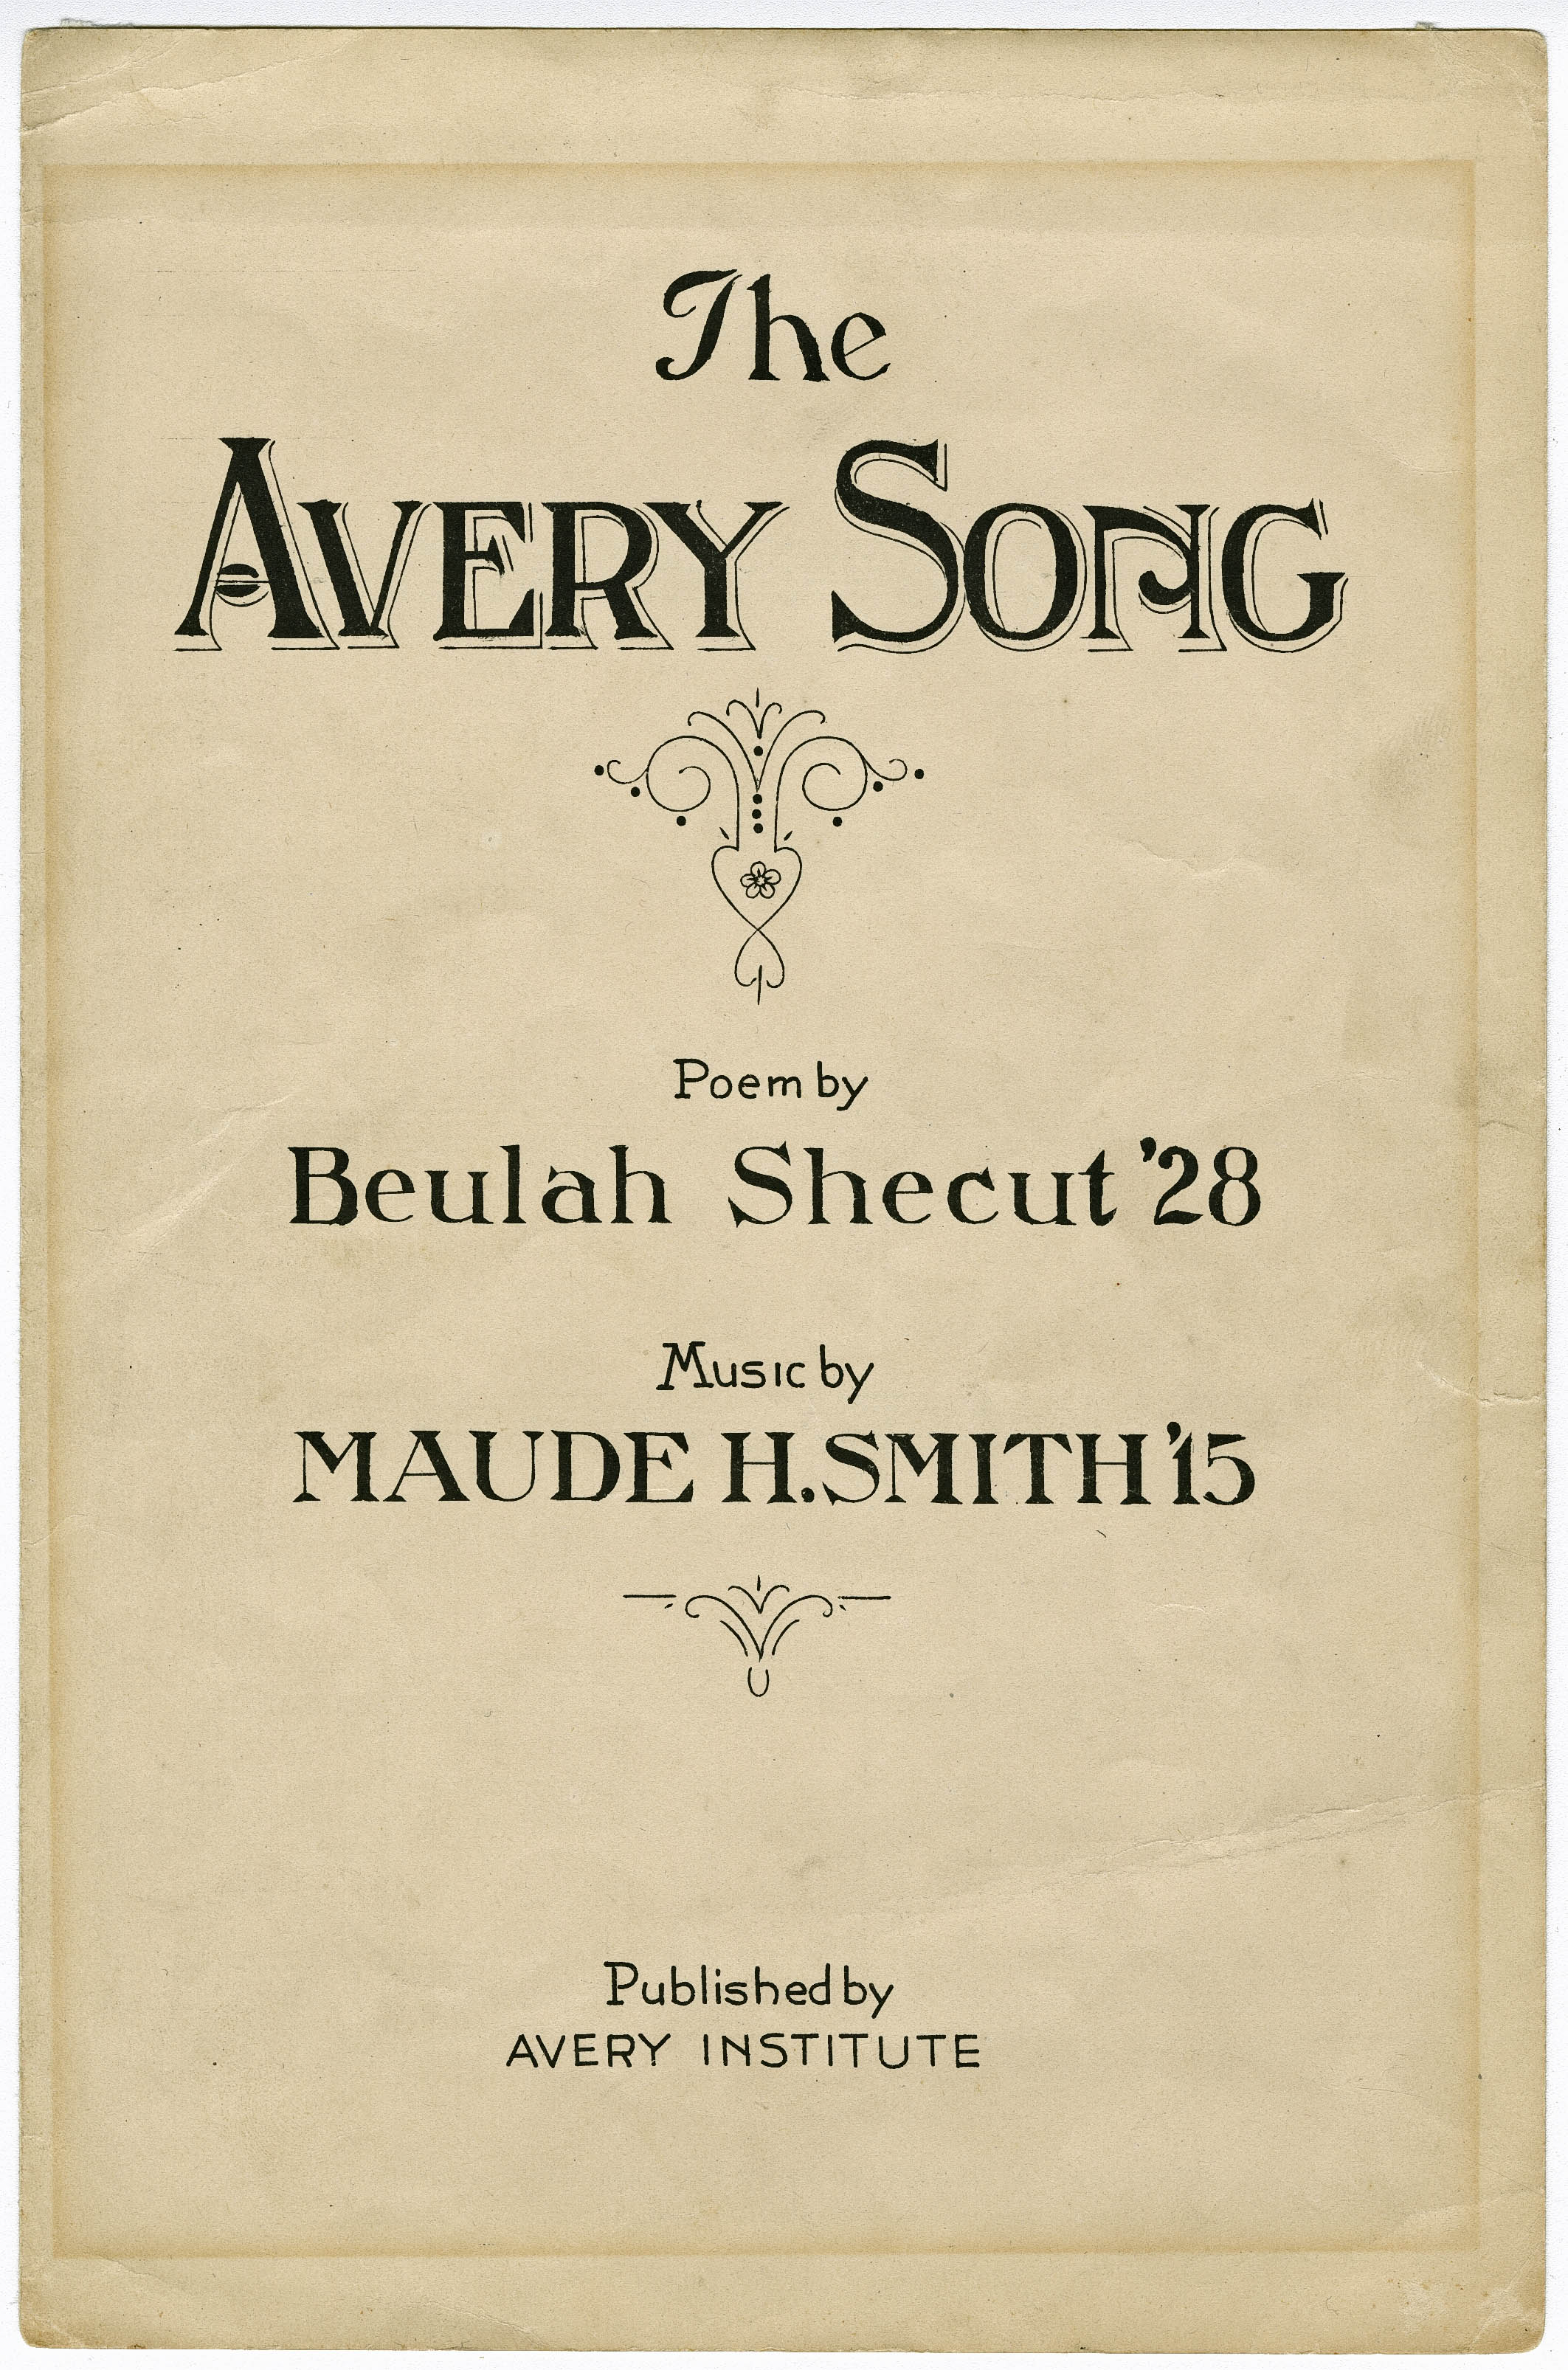 Sheet Music for The Avery Song